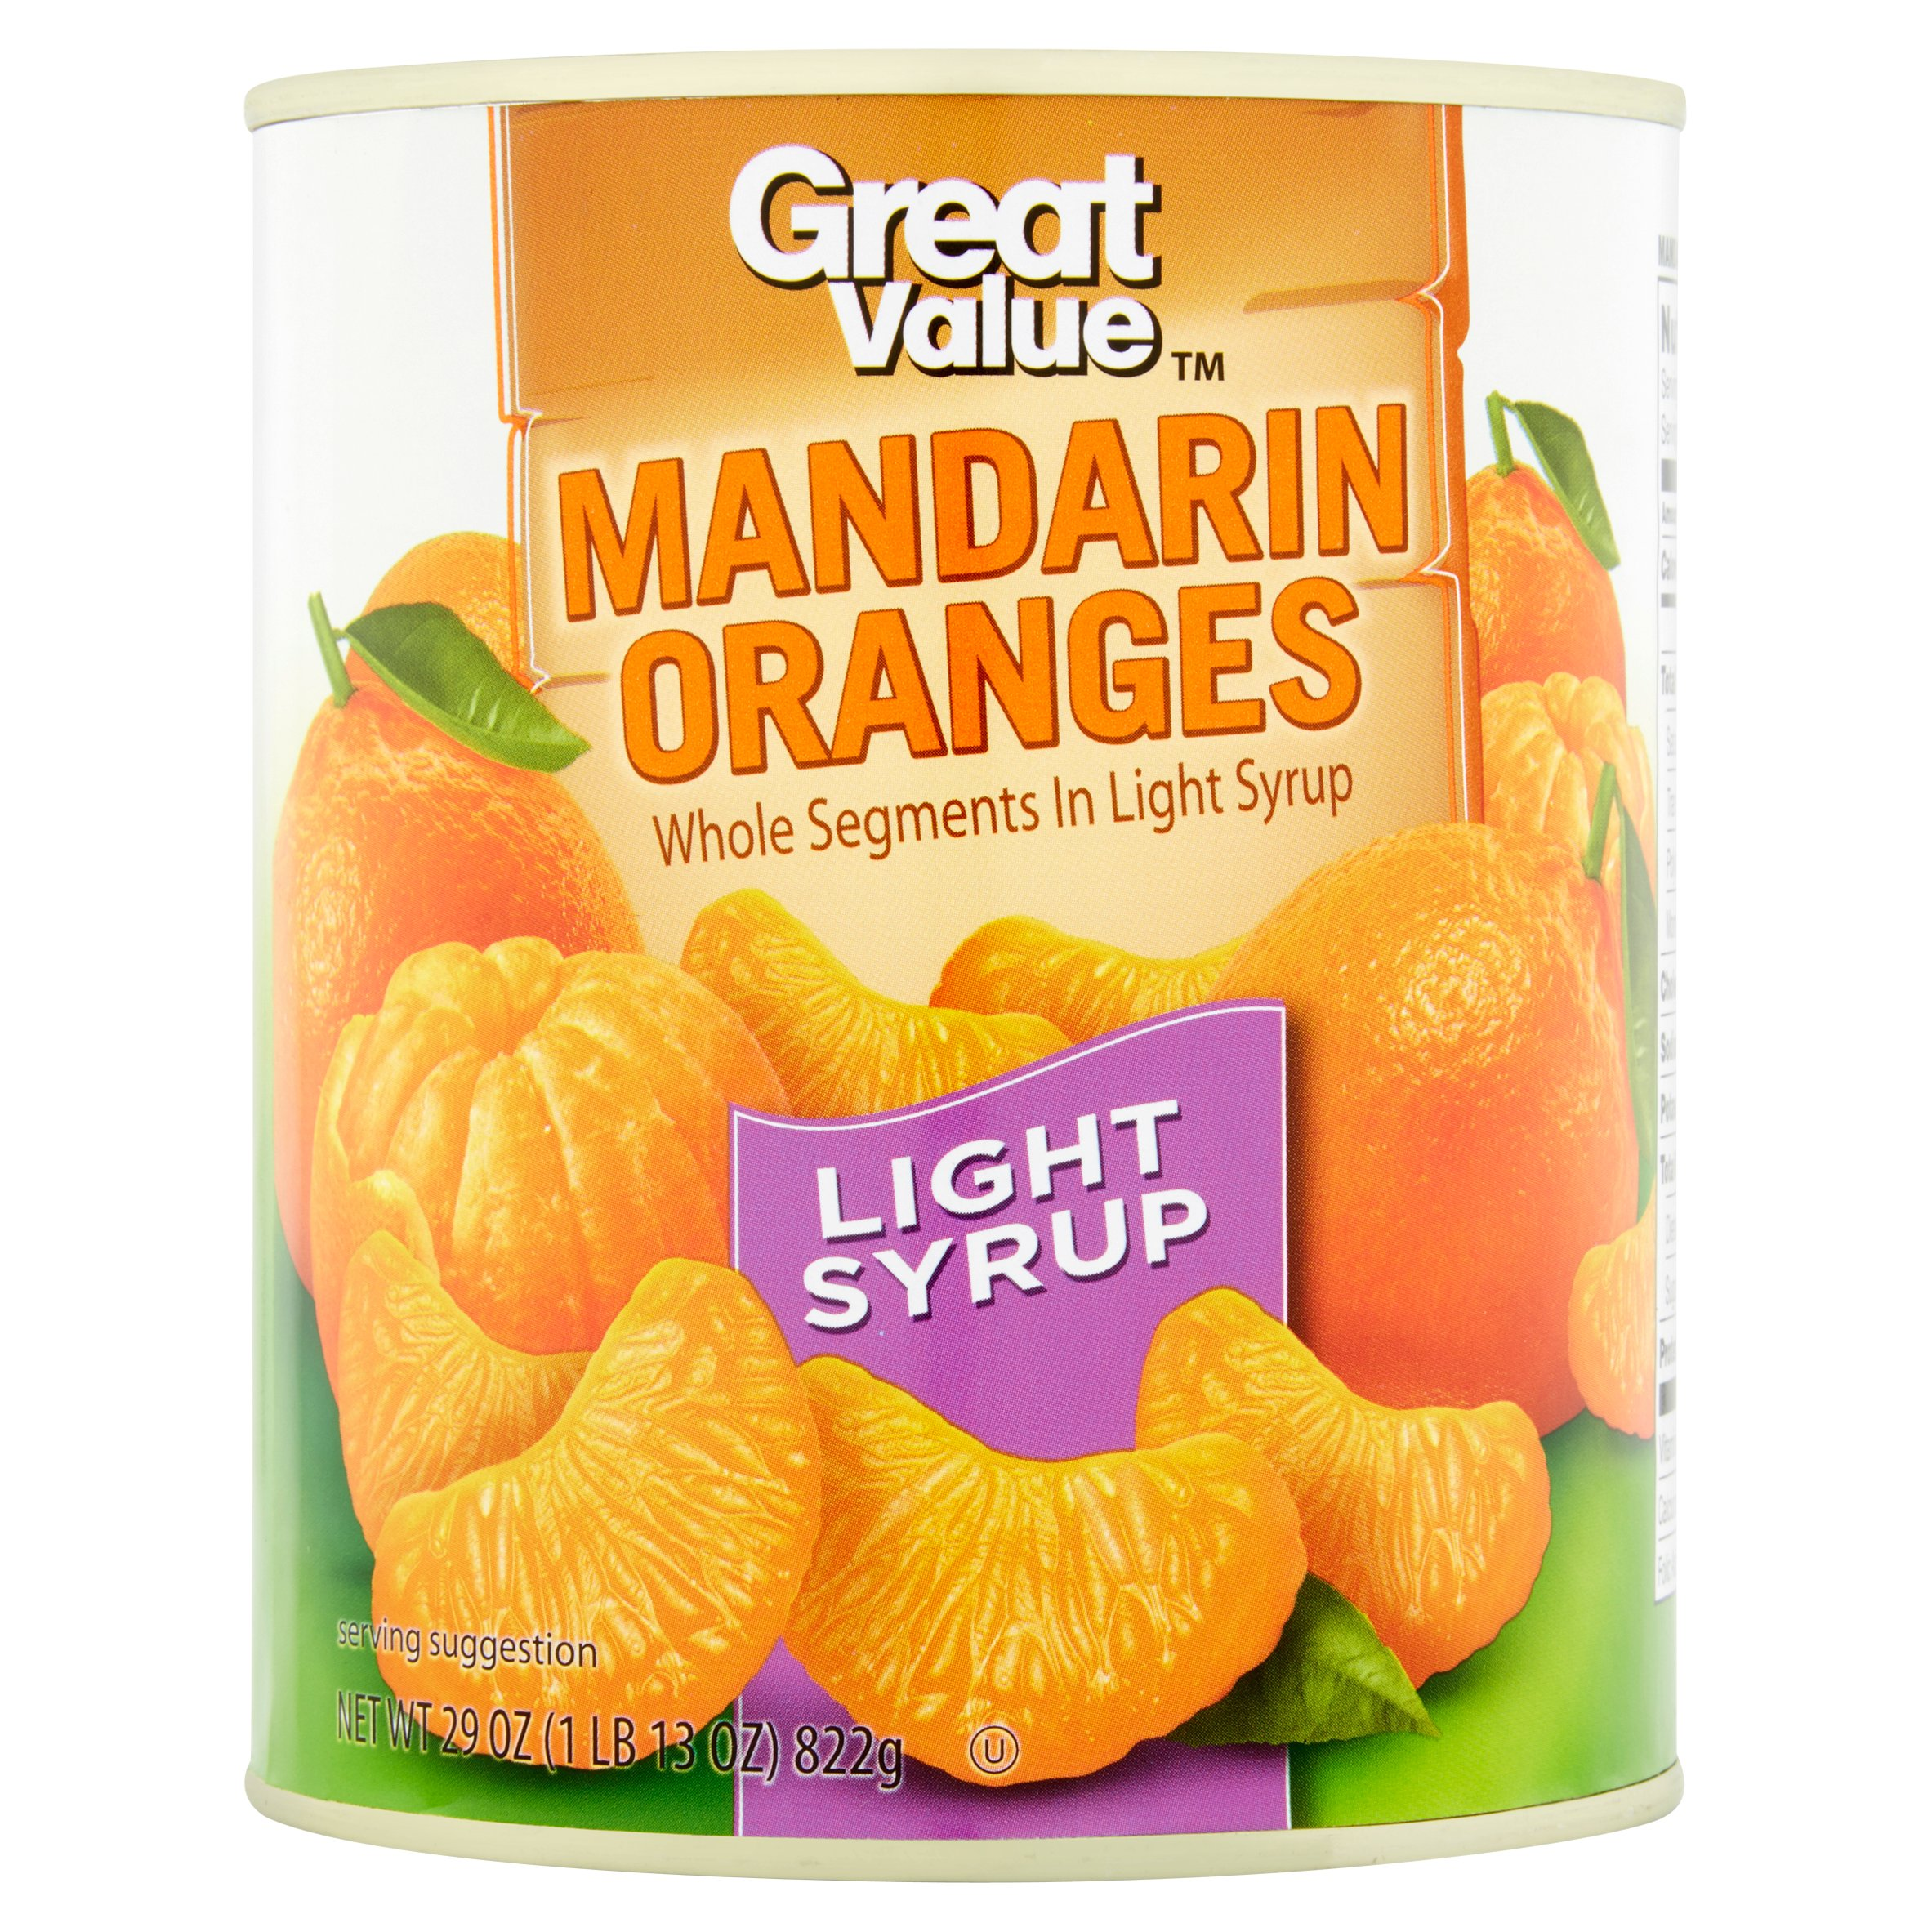 Great Value Mandarin Oranges Whole Segments In Light Syrup, 29 Oz